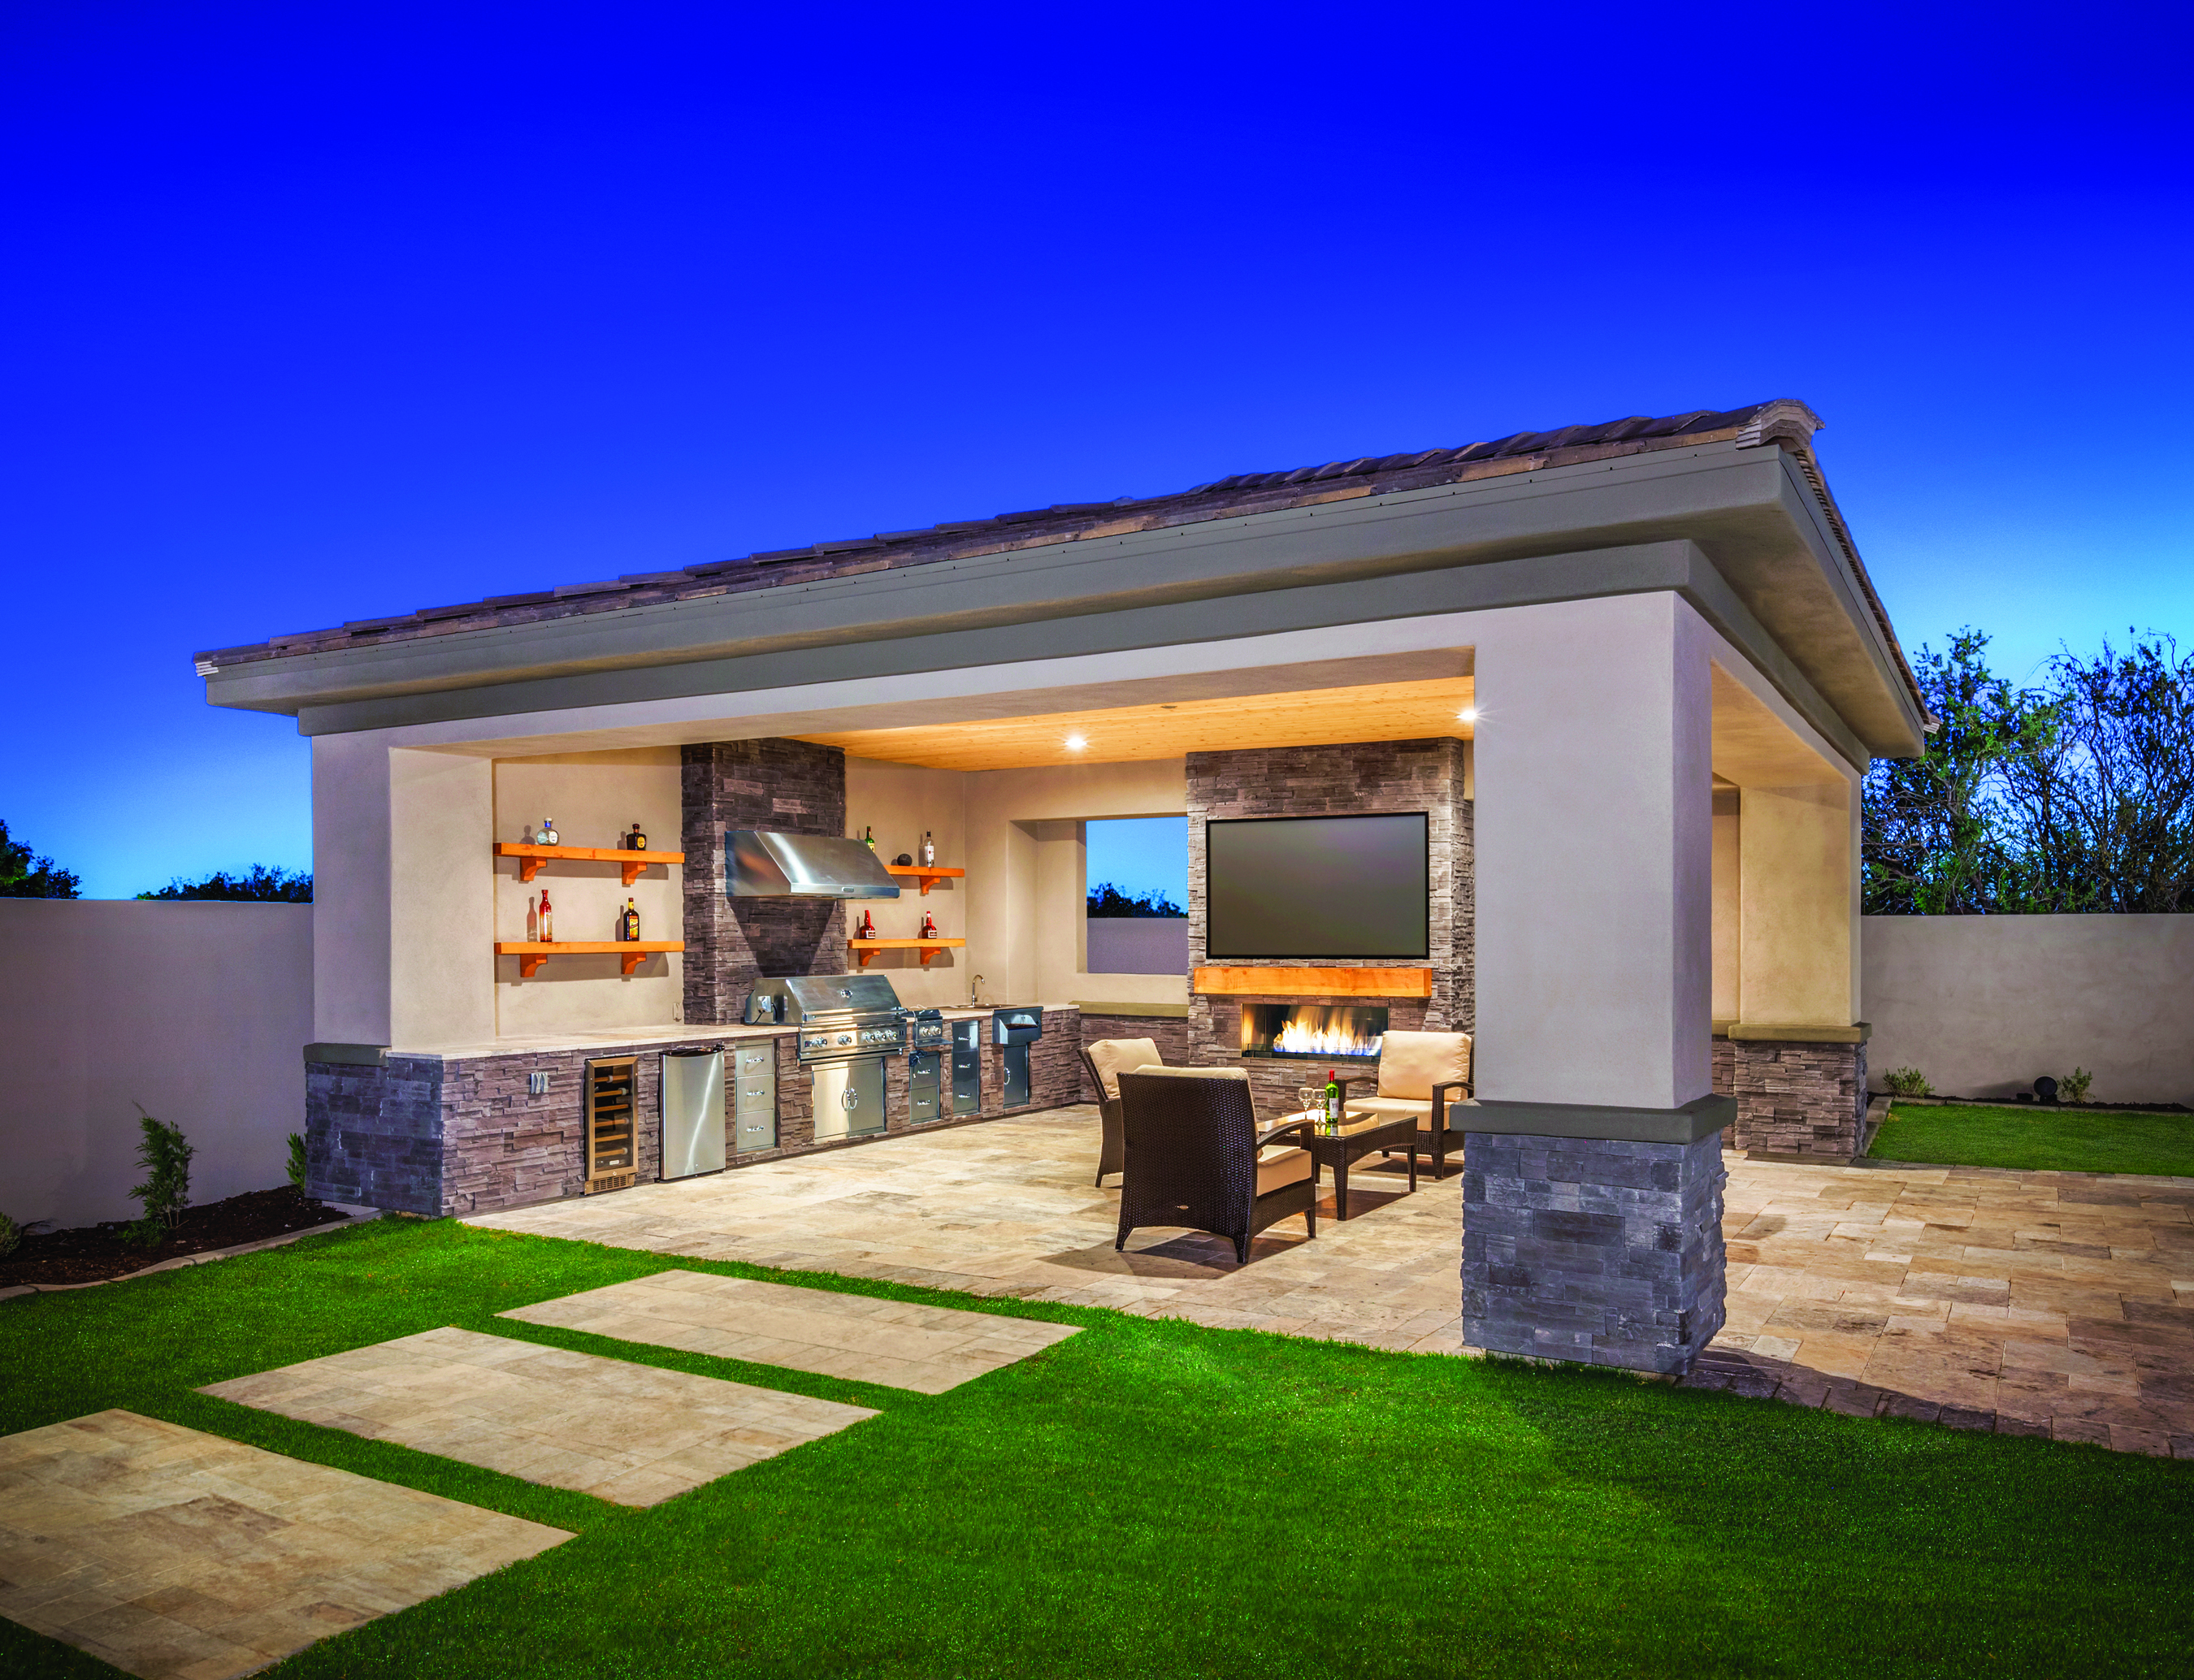 50 new home features buyers want | Pro Builder